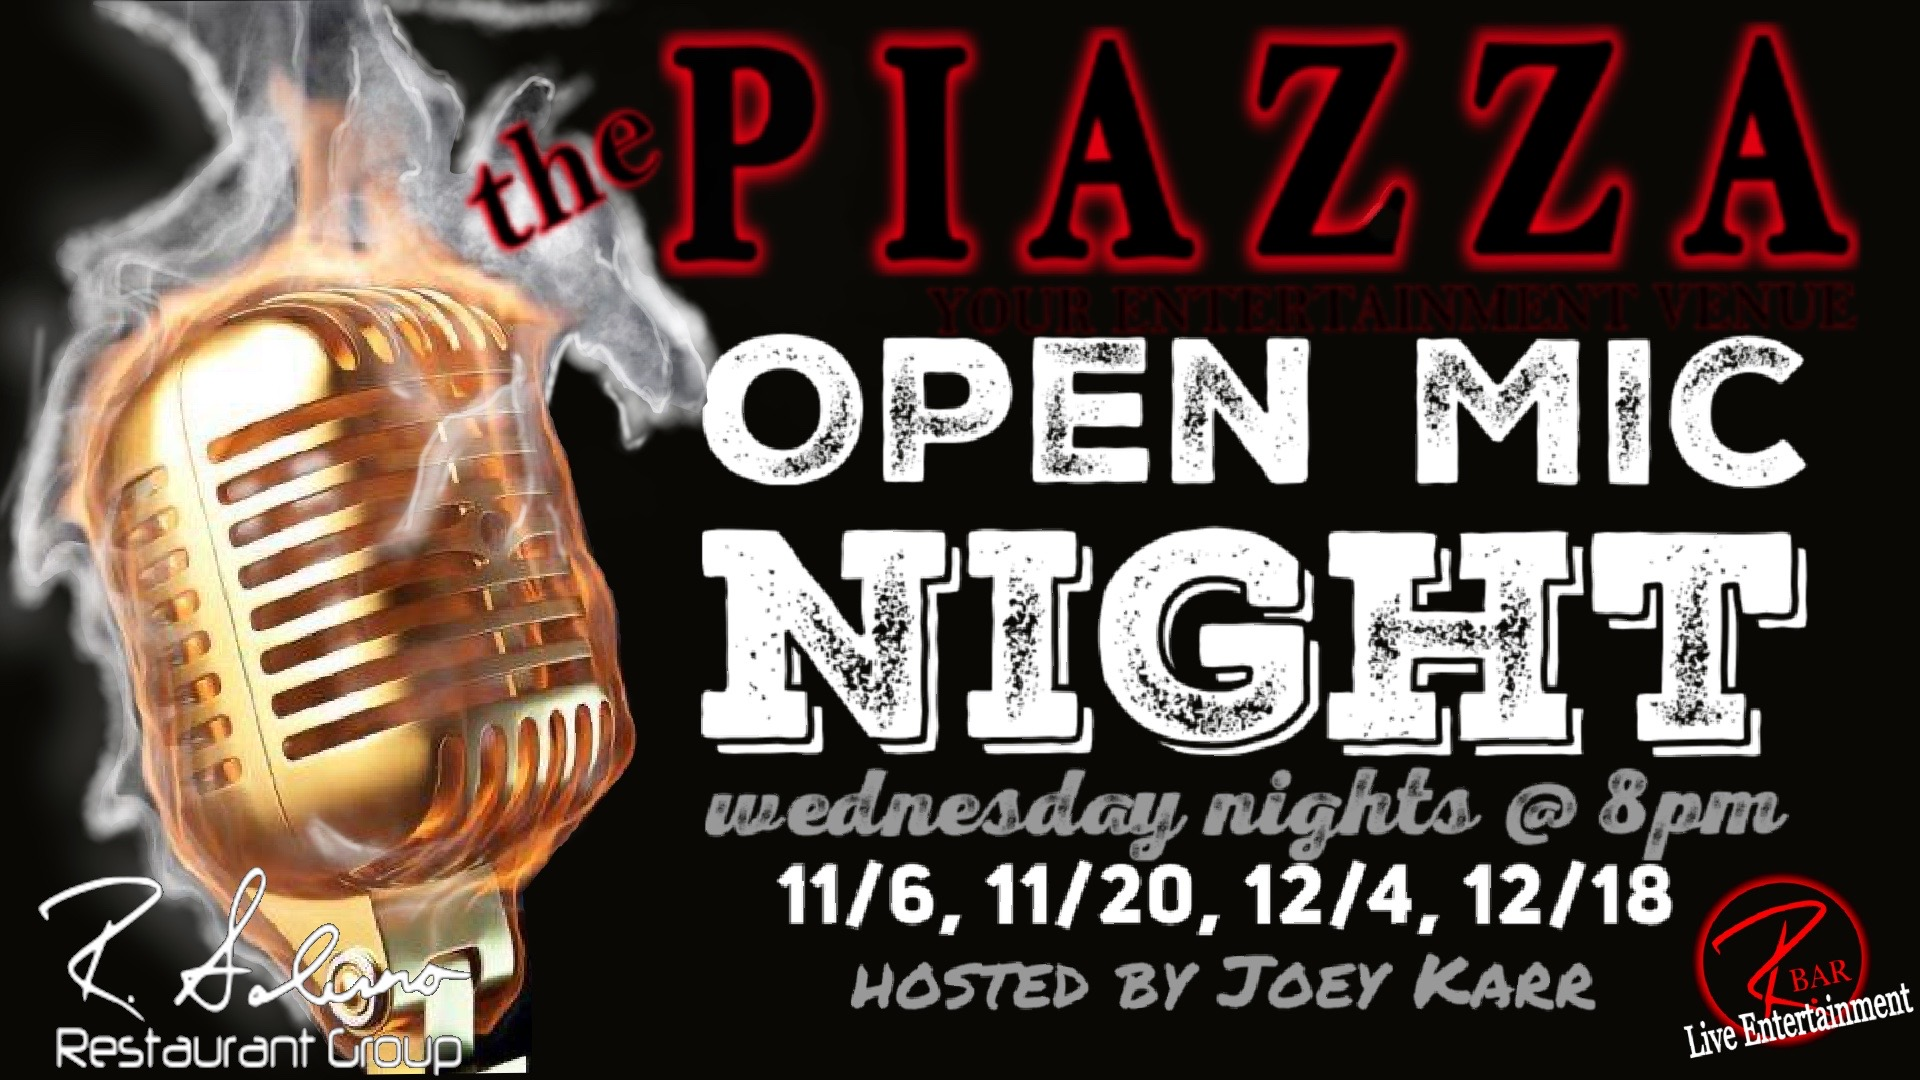 Open Mic Nights at the Piazza Aurora with Joey Karr @ the PIAZZA - Aurora